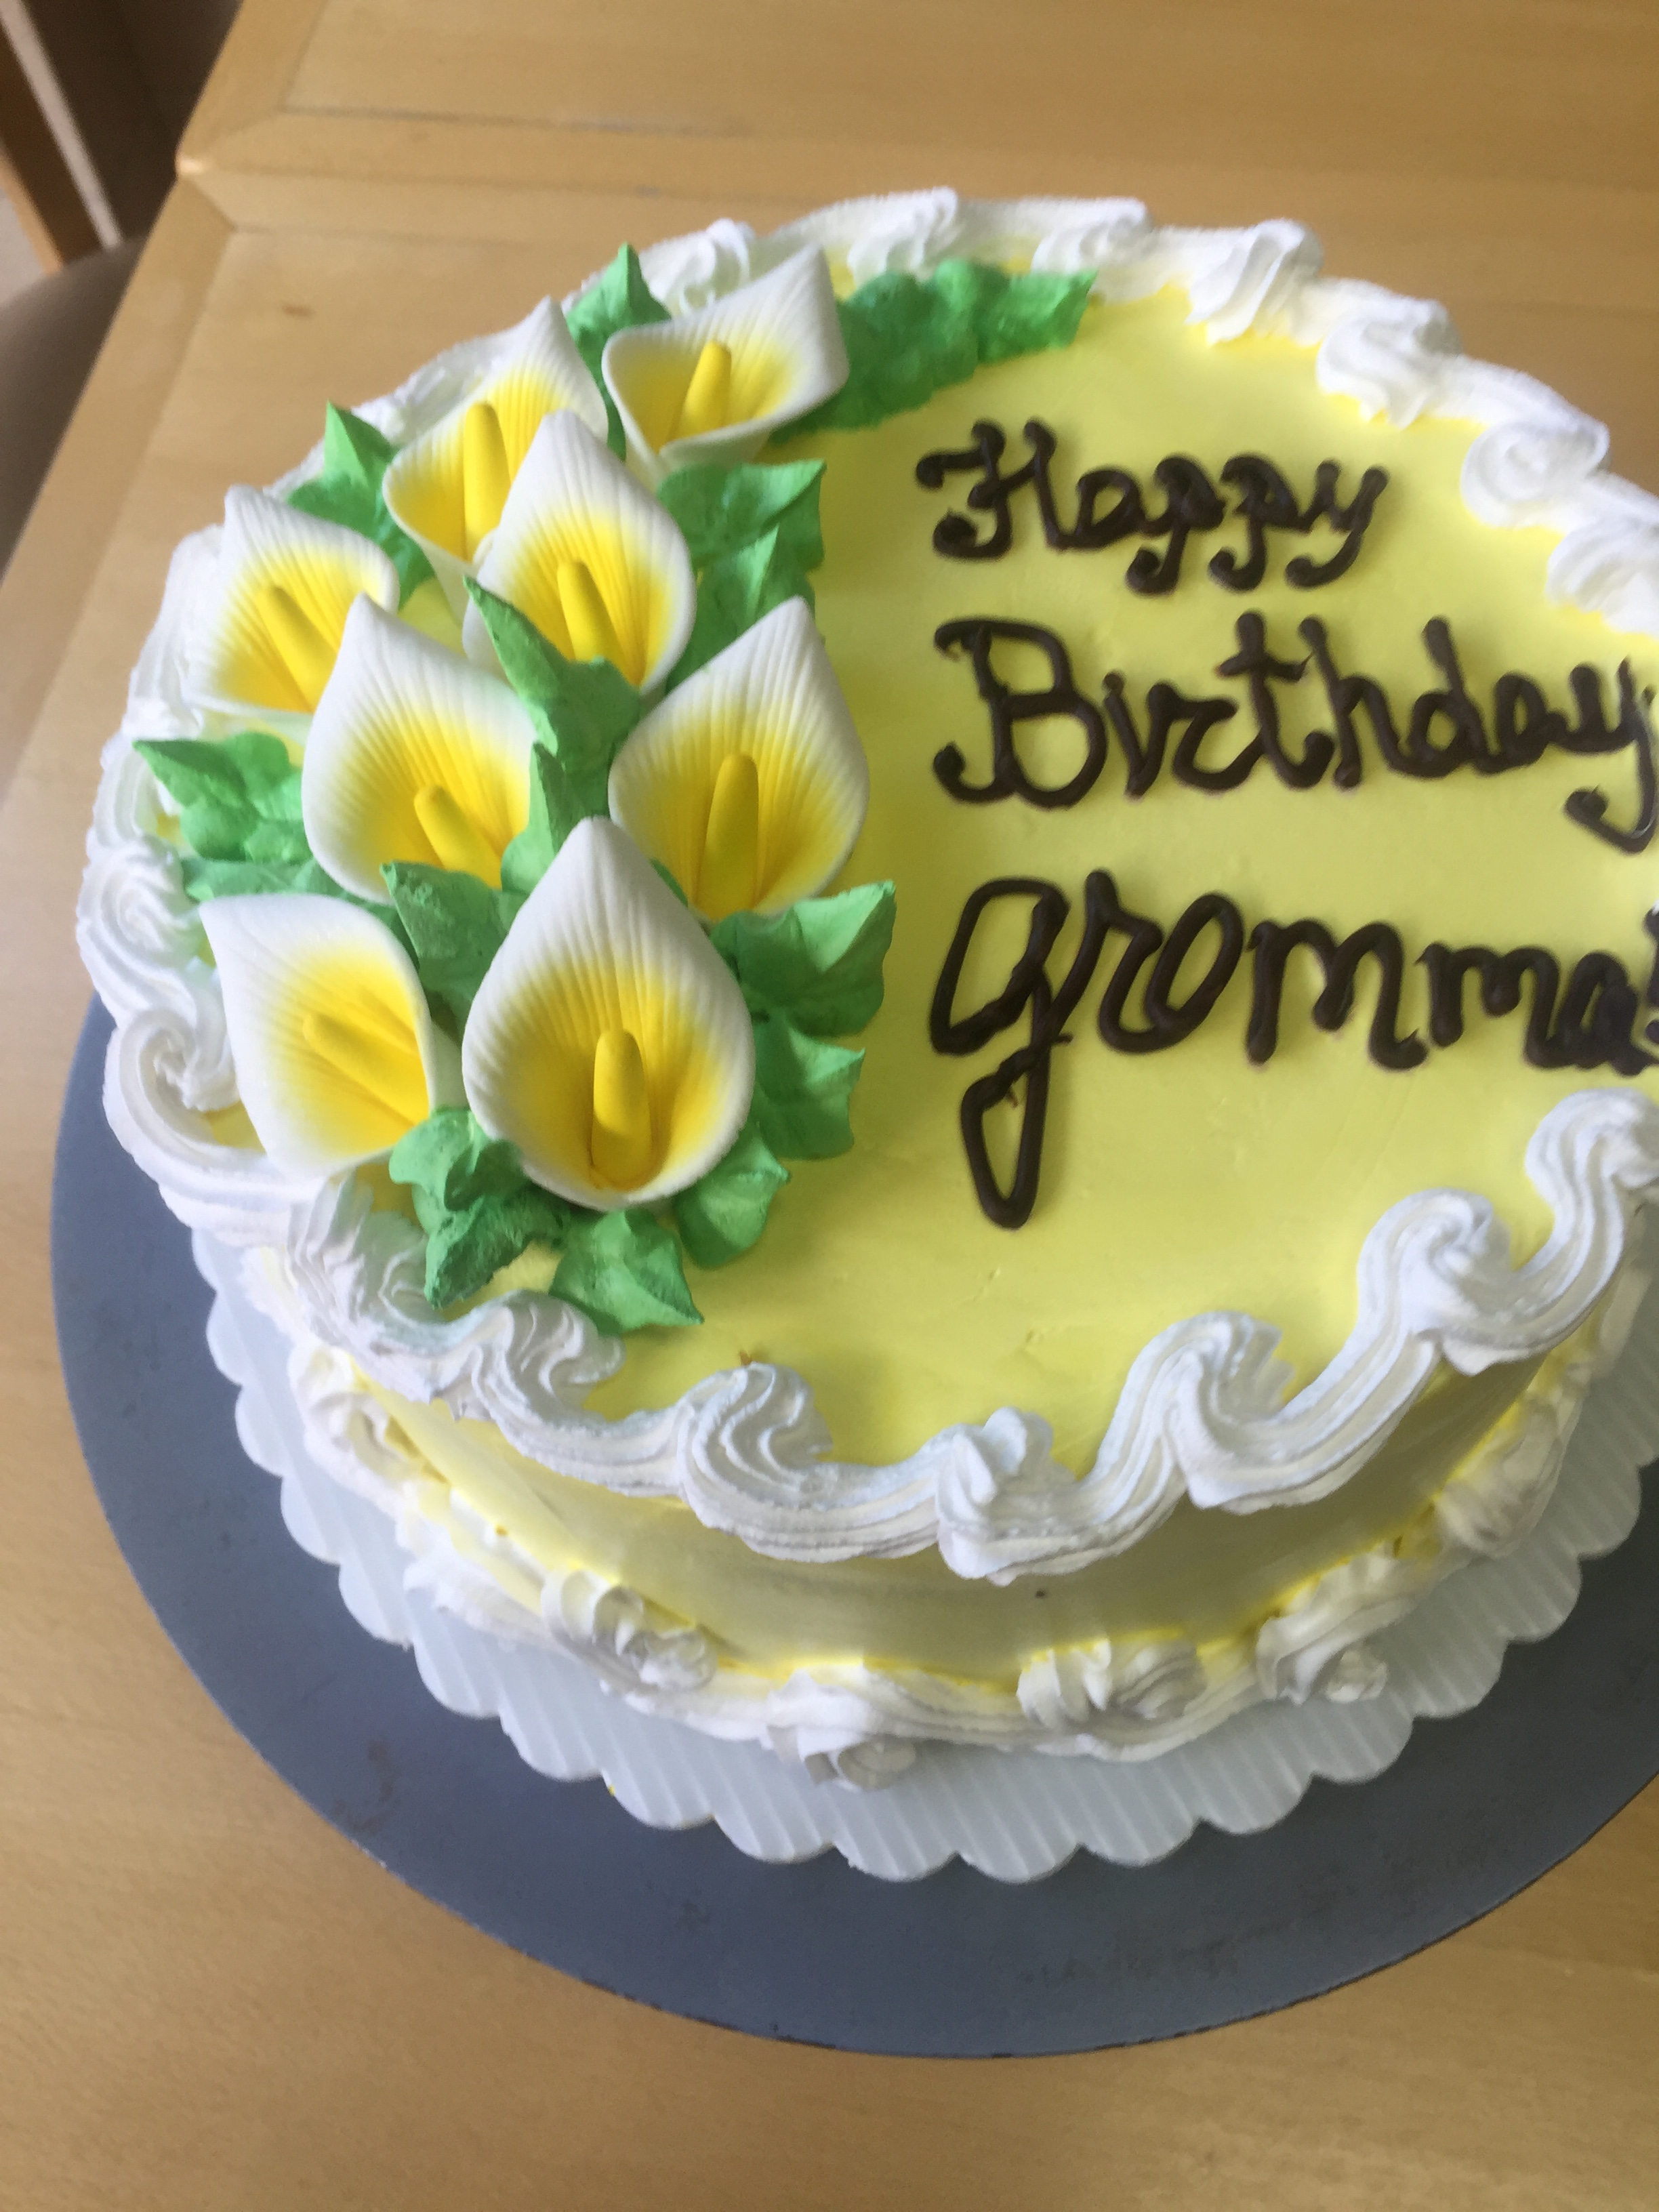 Lemon Birthday Cake For Grandma Wild Berries Bakery And Cafe